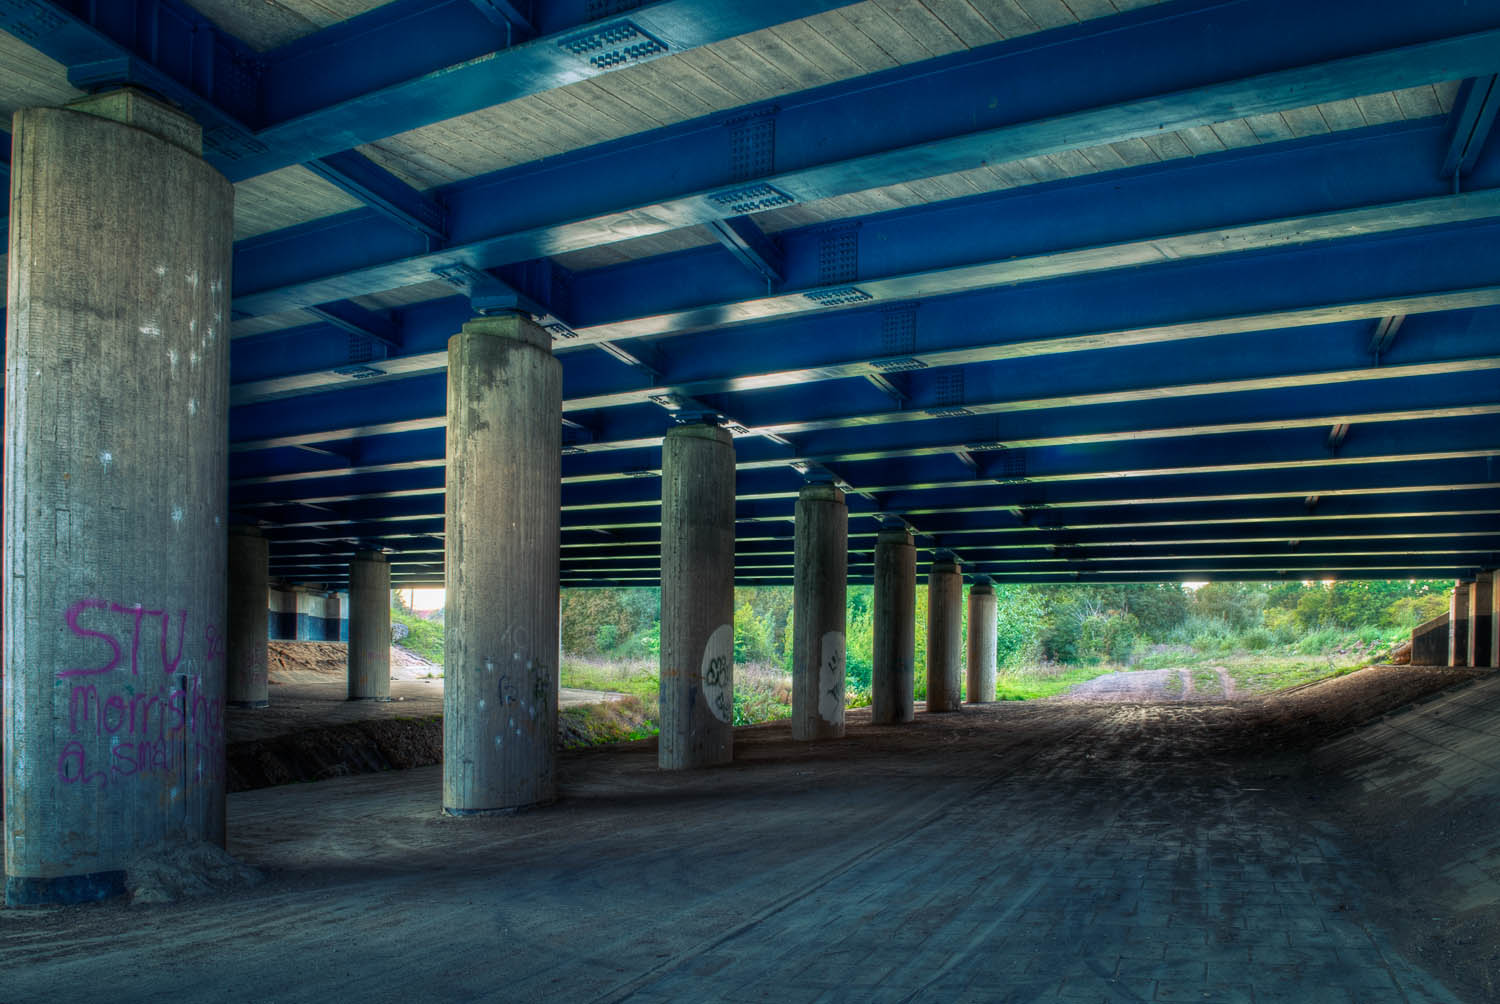 Under the A120